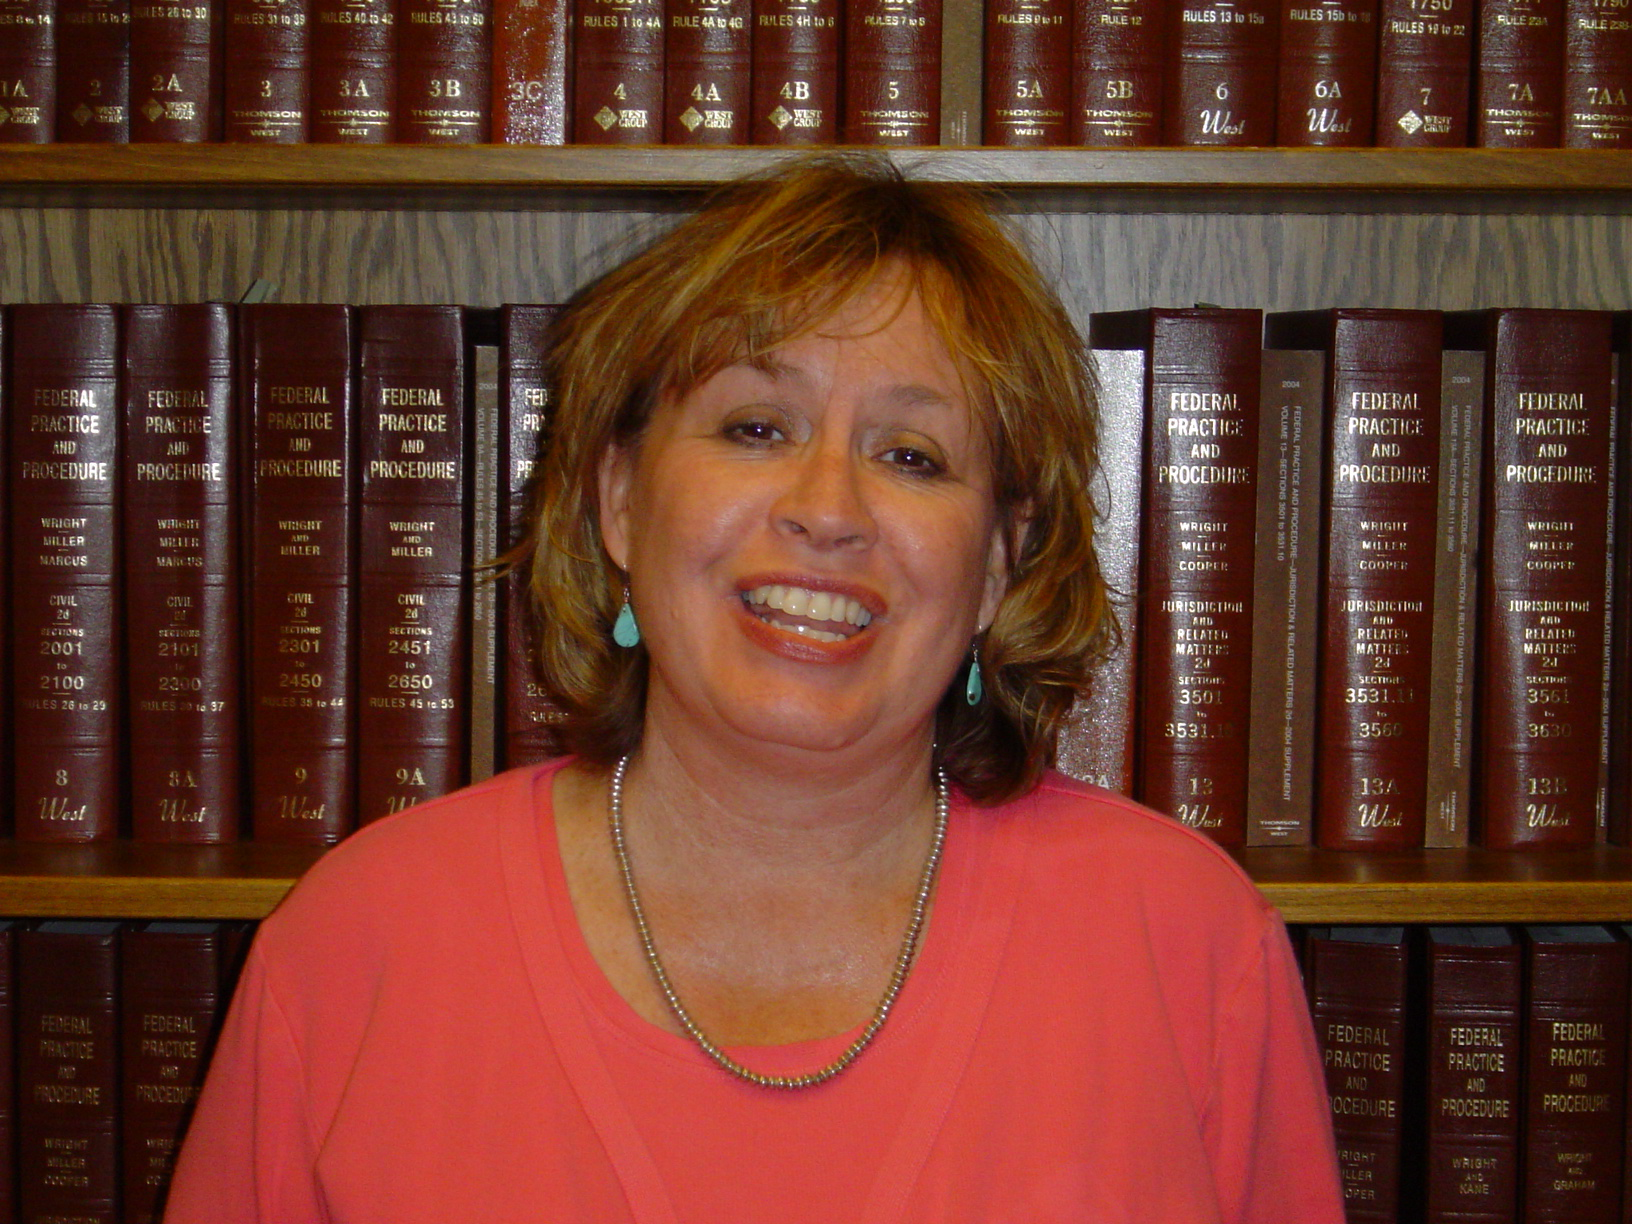 Mary Jo O'Neil is a federal attorney for the U.S. Equal Employment Opportunity Commission